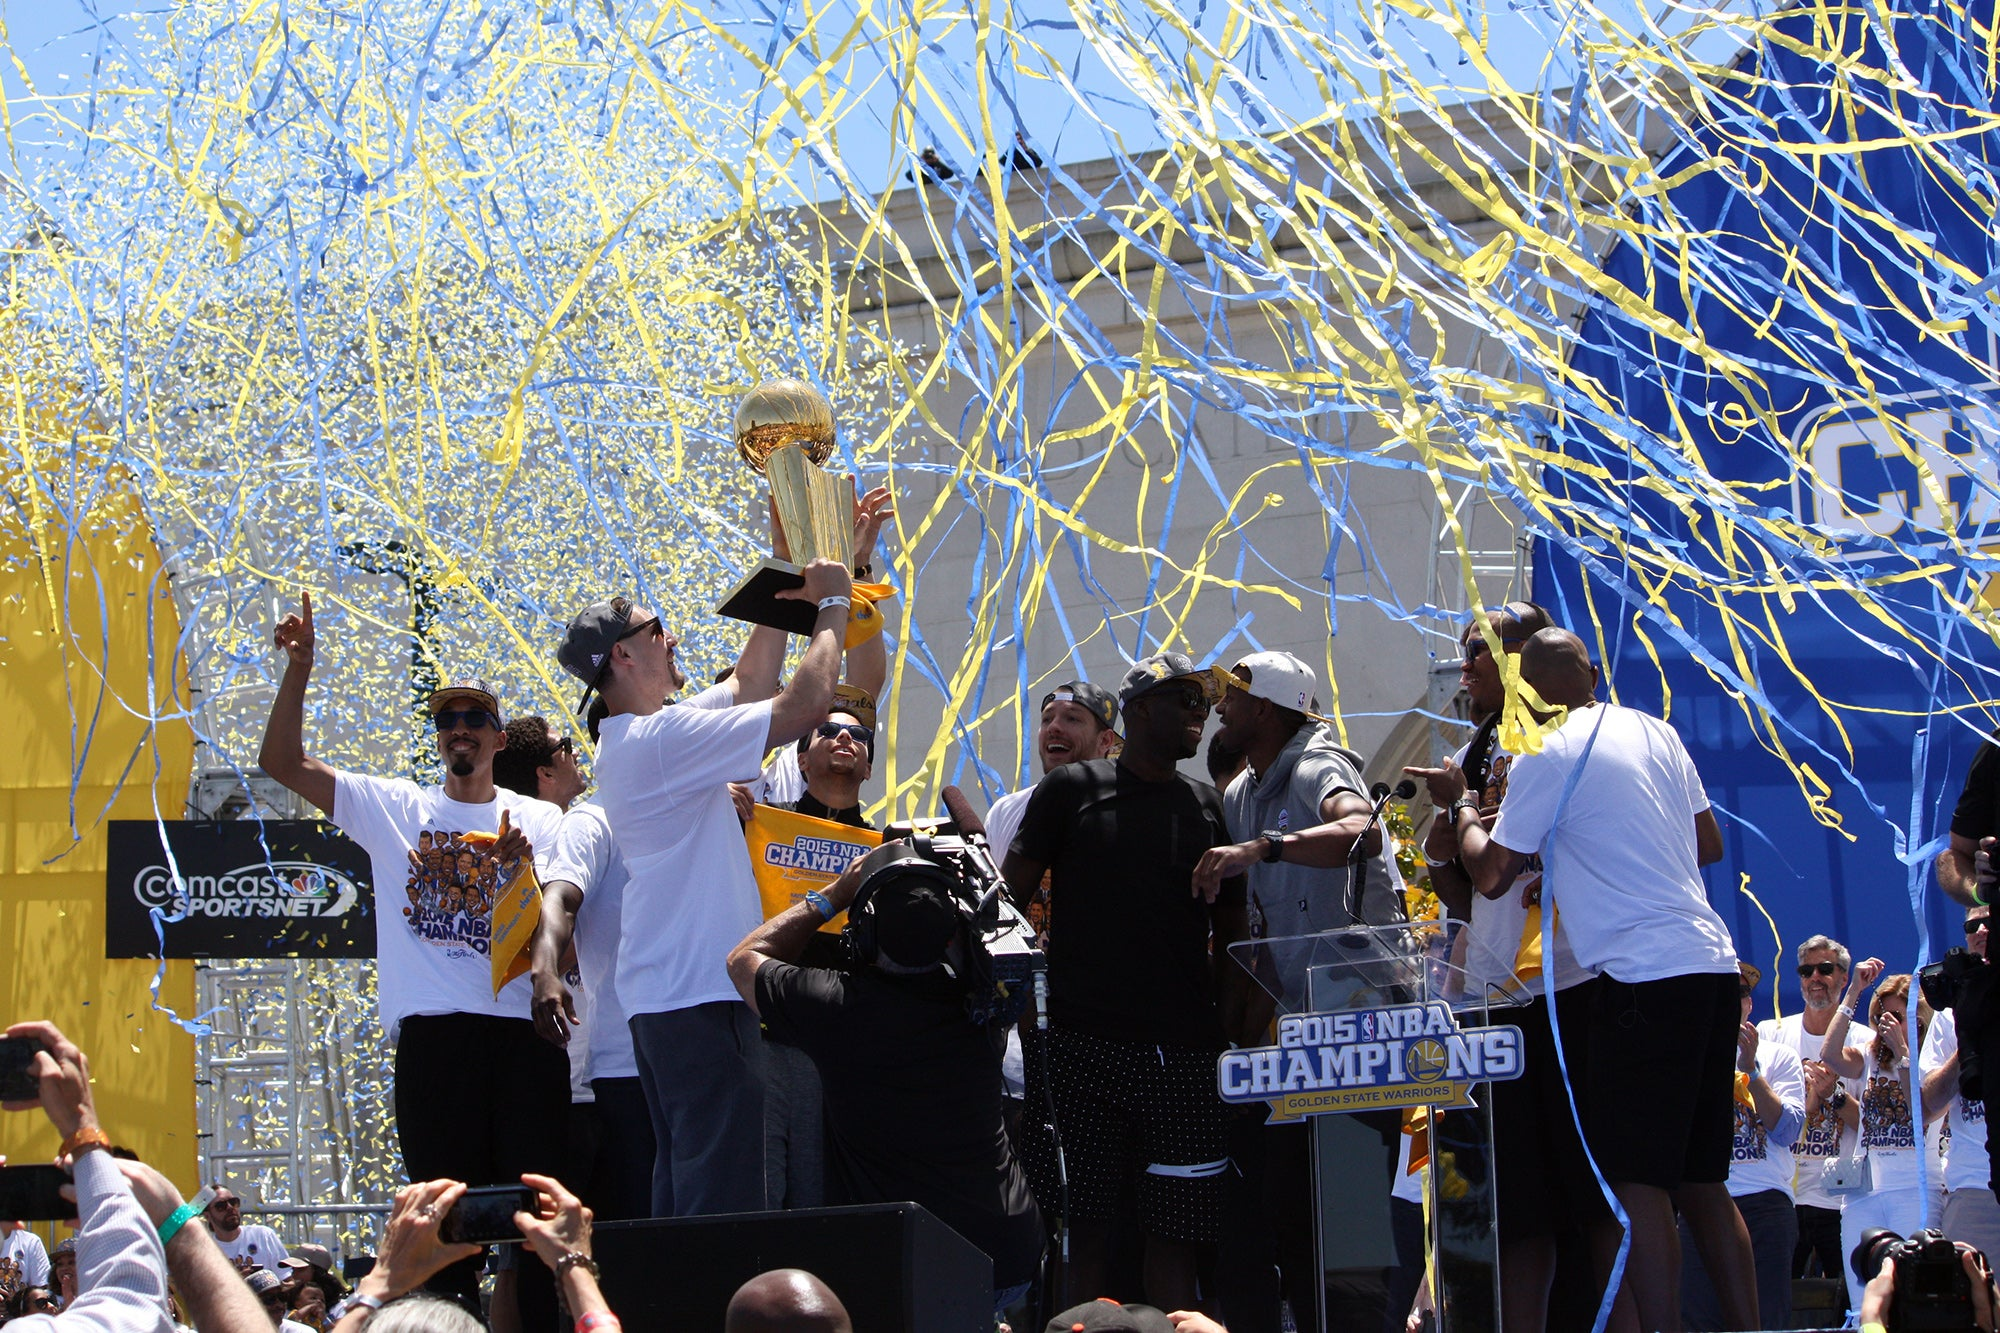 The event culminated with an explosion of yellow and blue streamers and confetti.